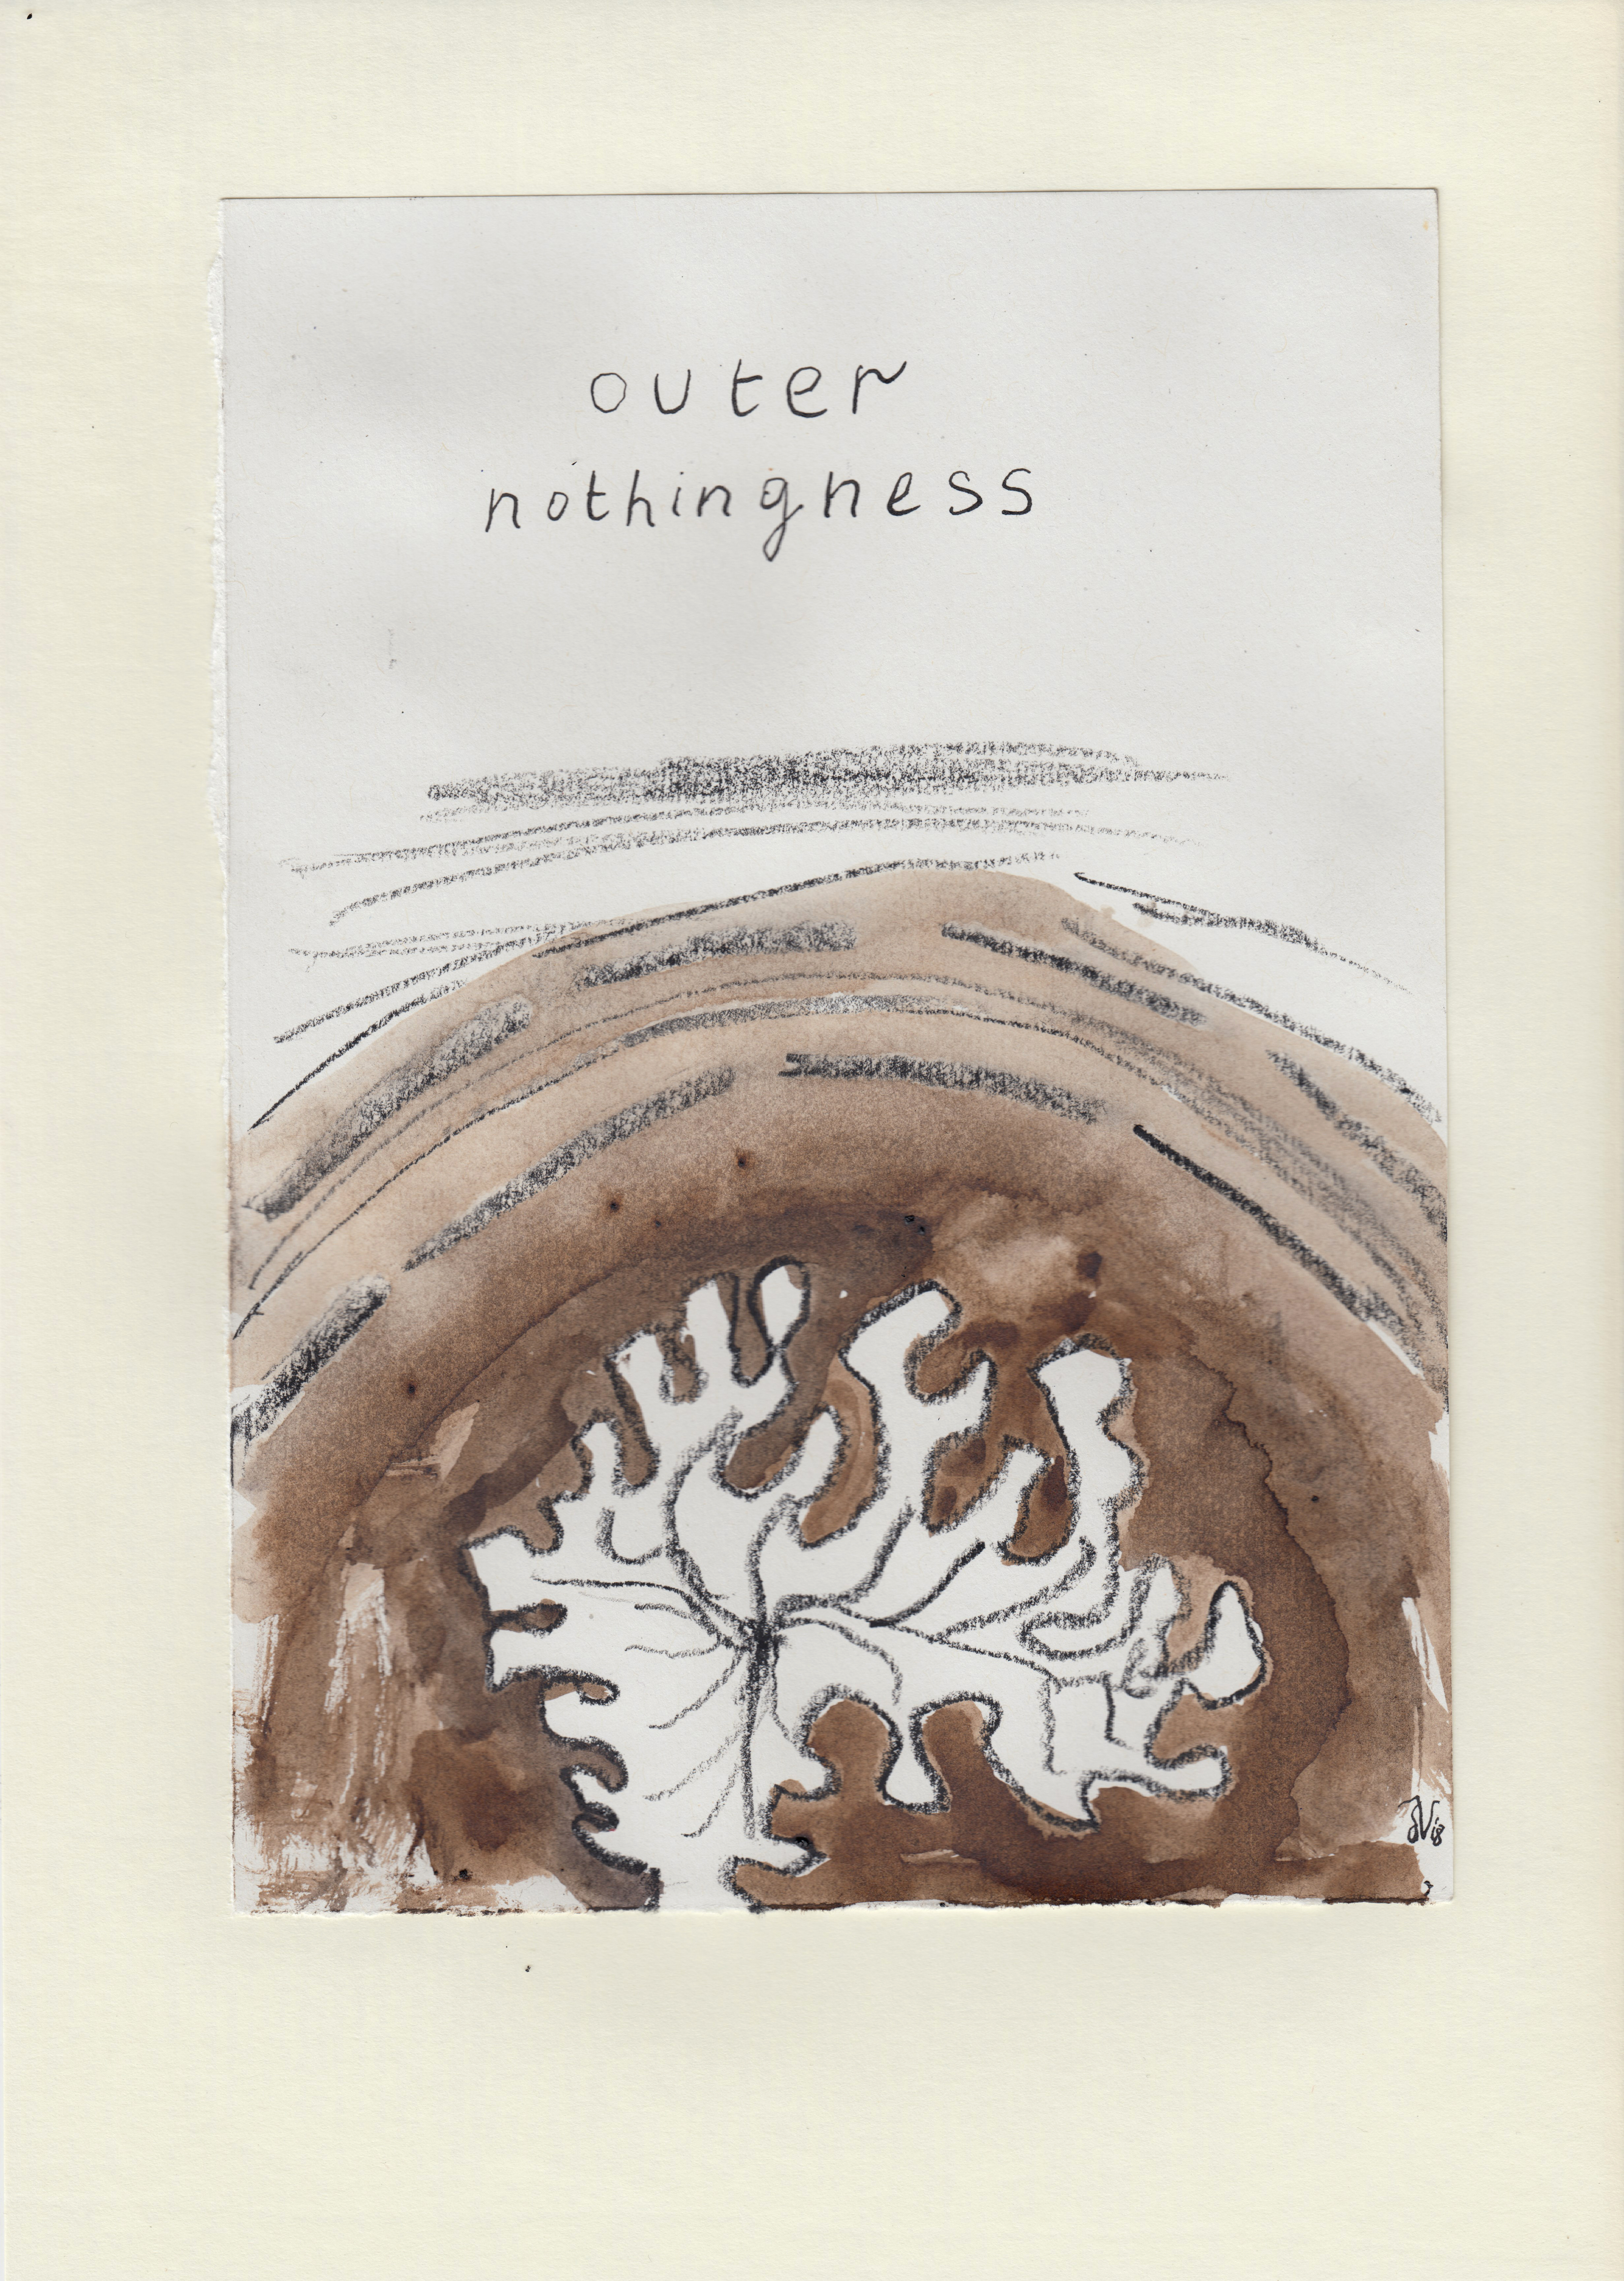 outerNothingness